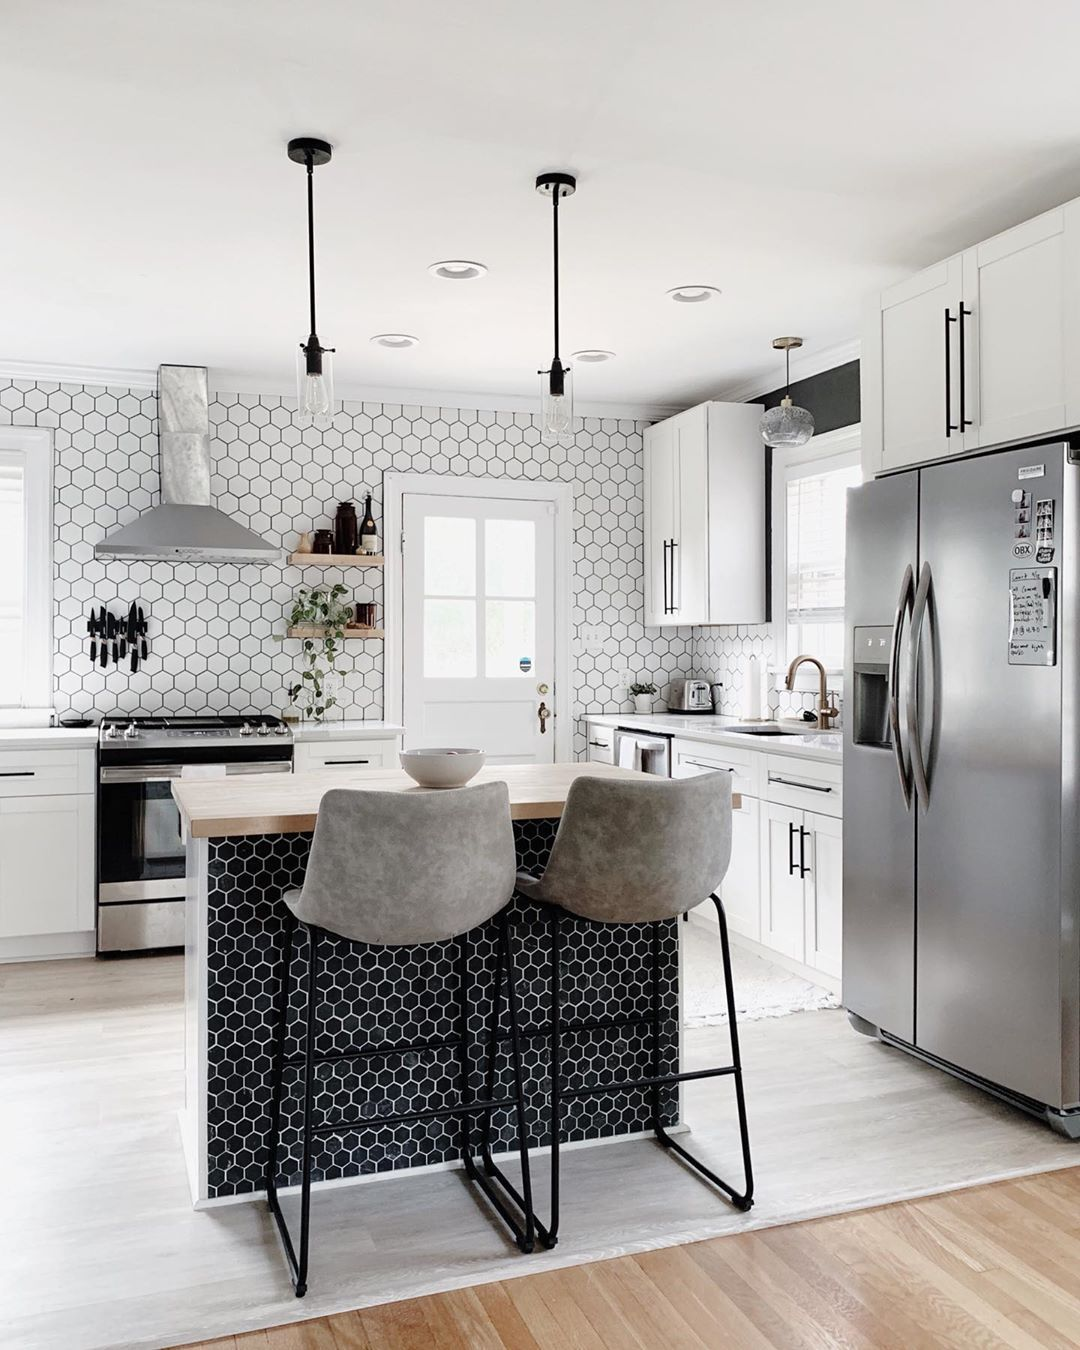 White Shaker Cabinets In Black And White Kitchen Whiteshakercabinets In 2020 Kitchen Cabinet Styles White Shaker Cabinets Cabinets To Go